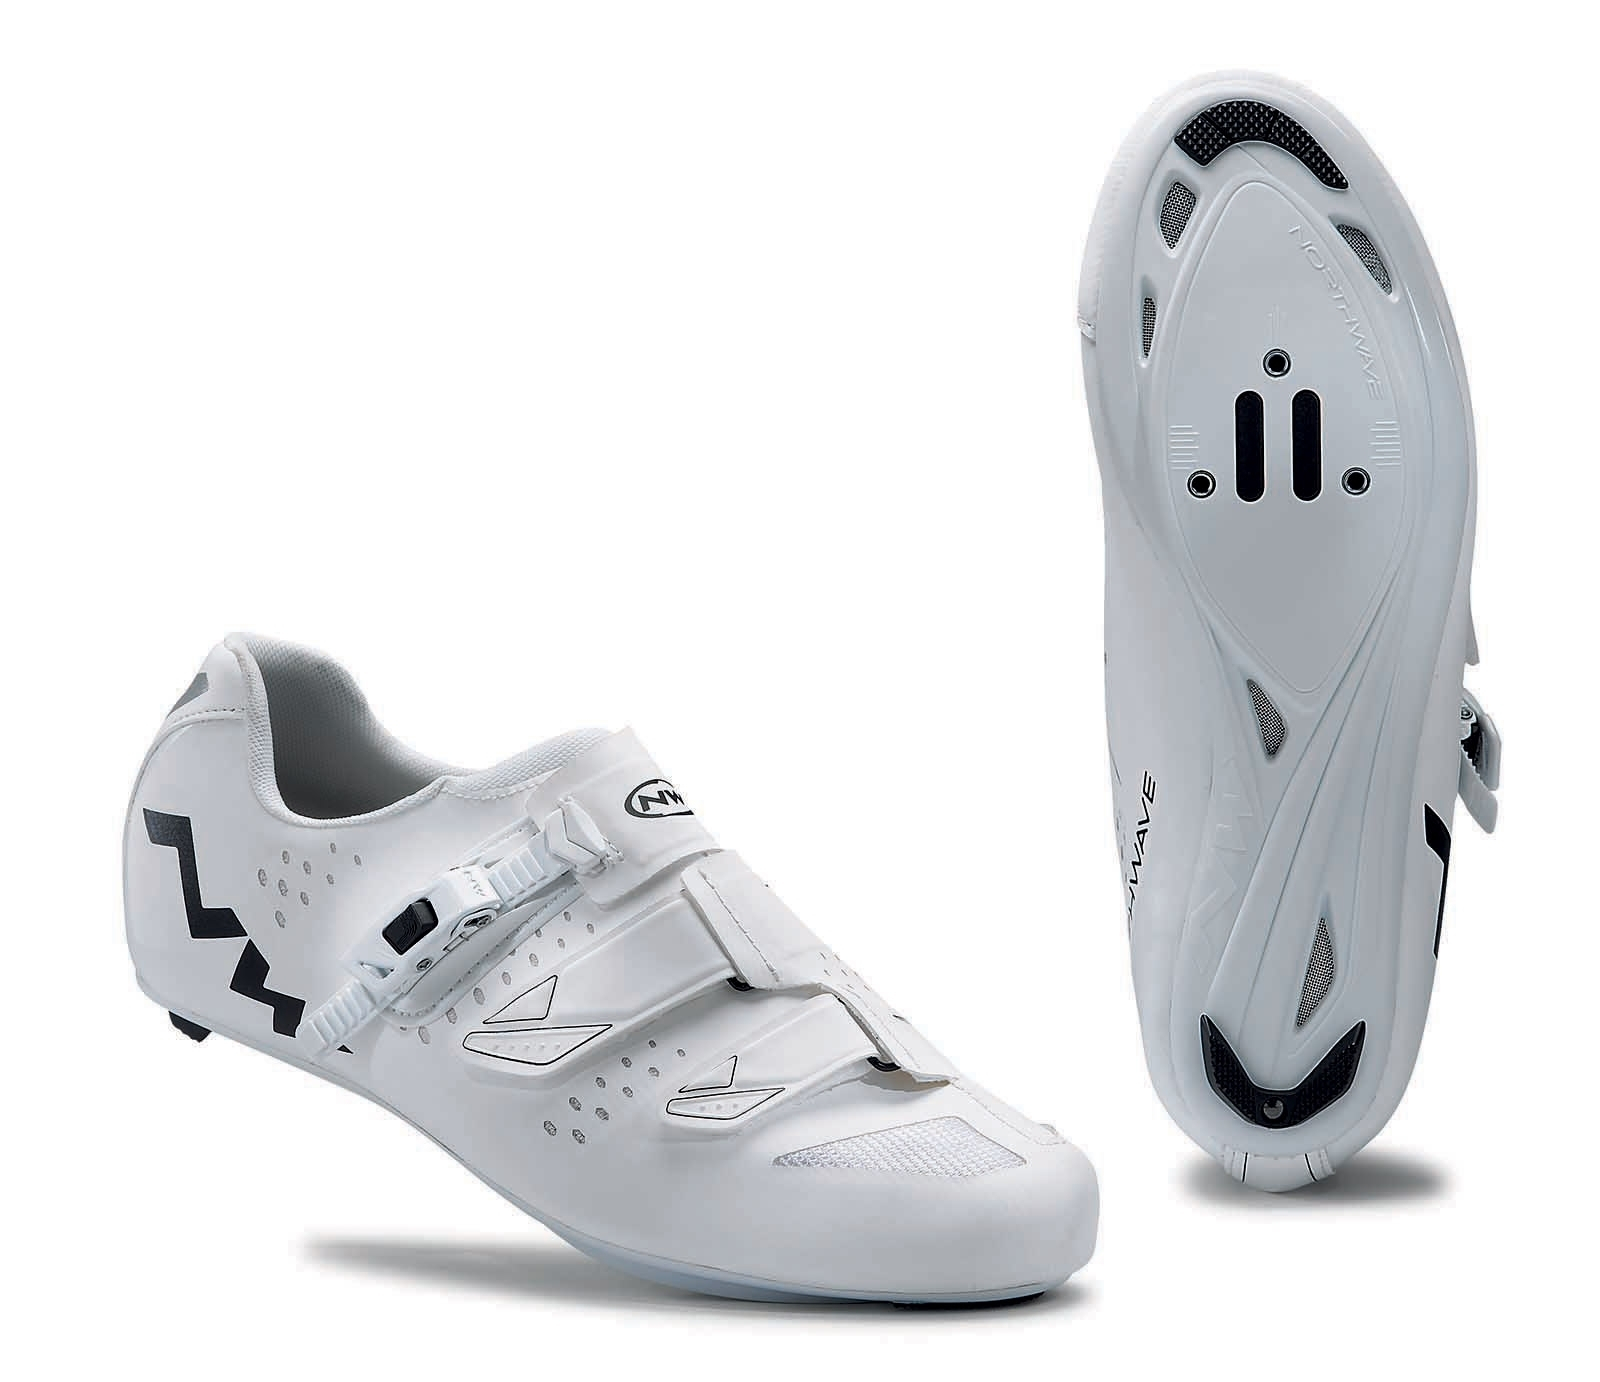 Best price Northwave Man road shoes PHANTOM SRS Italy2us.com